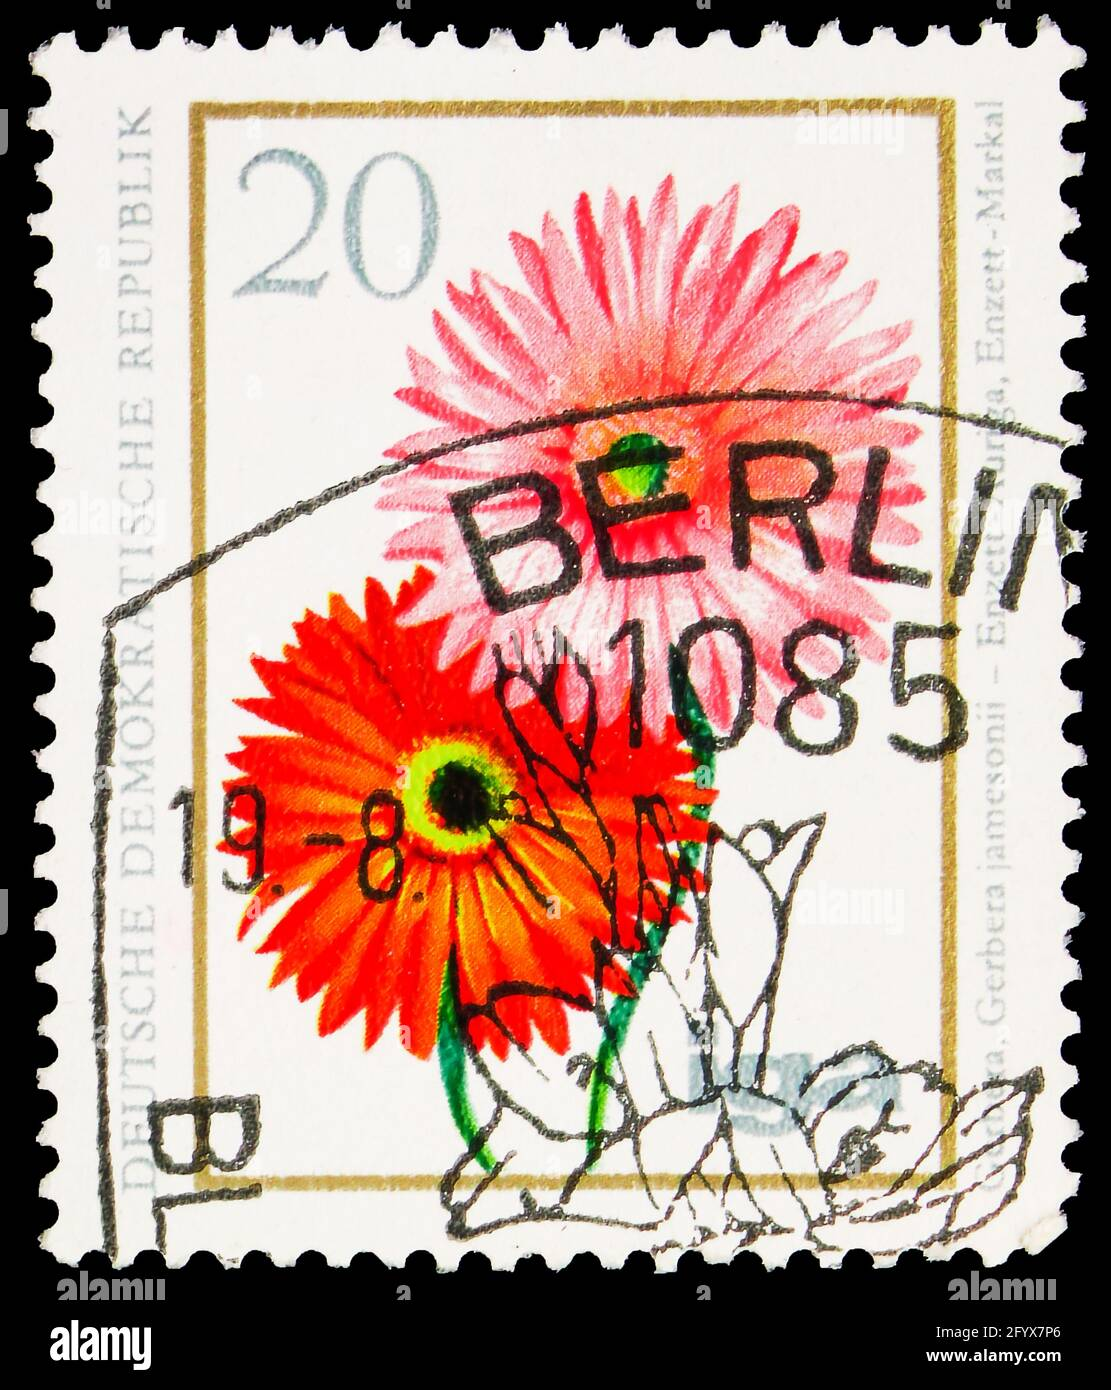 MOSCOW, RUSSIA - SEPTEMBER 27, 2019: Postage stamp printed in Germany, Democratic Republic, shows Gerbera, 20 Pf. - East German pfennig, Flowers serie Stock Photo